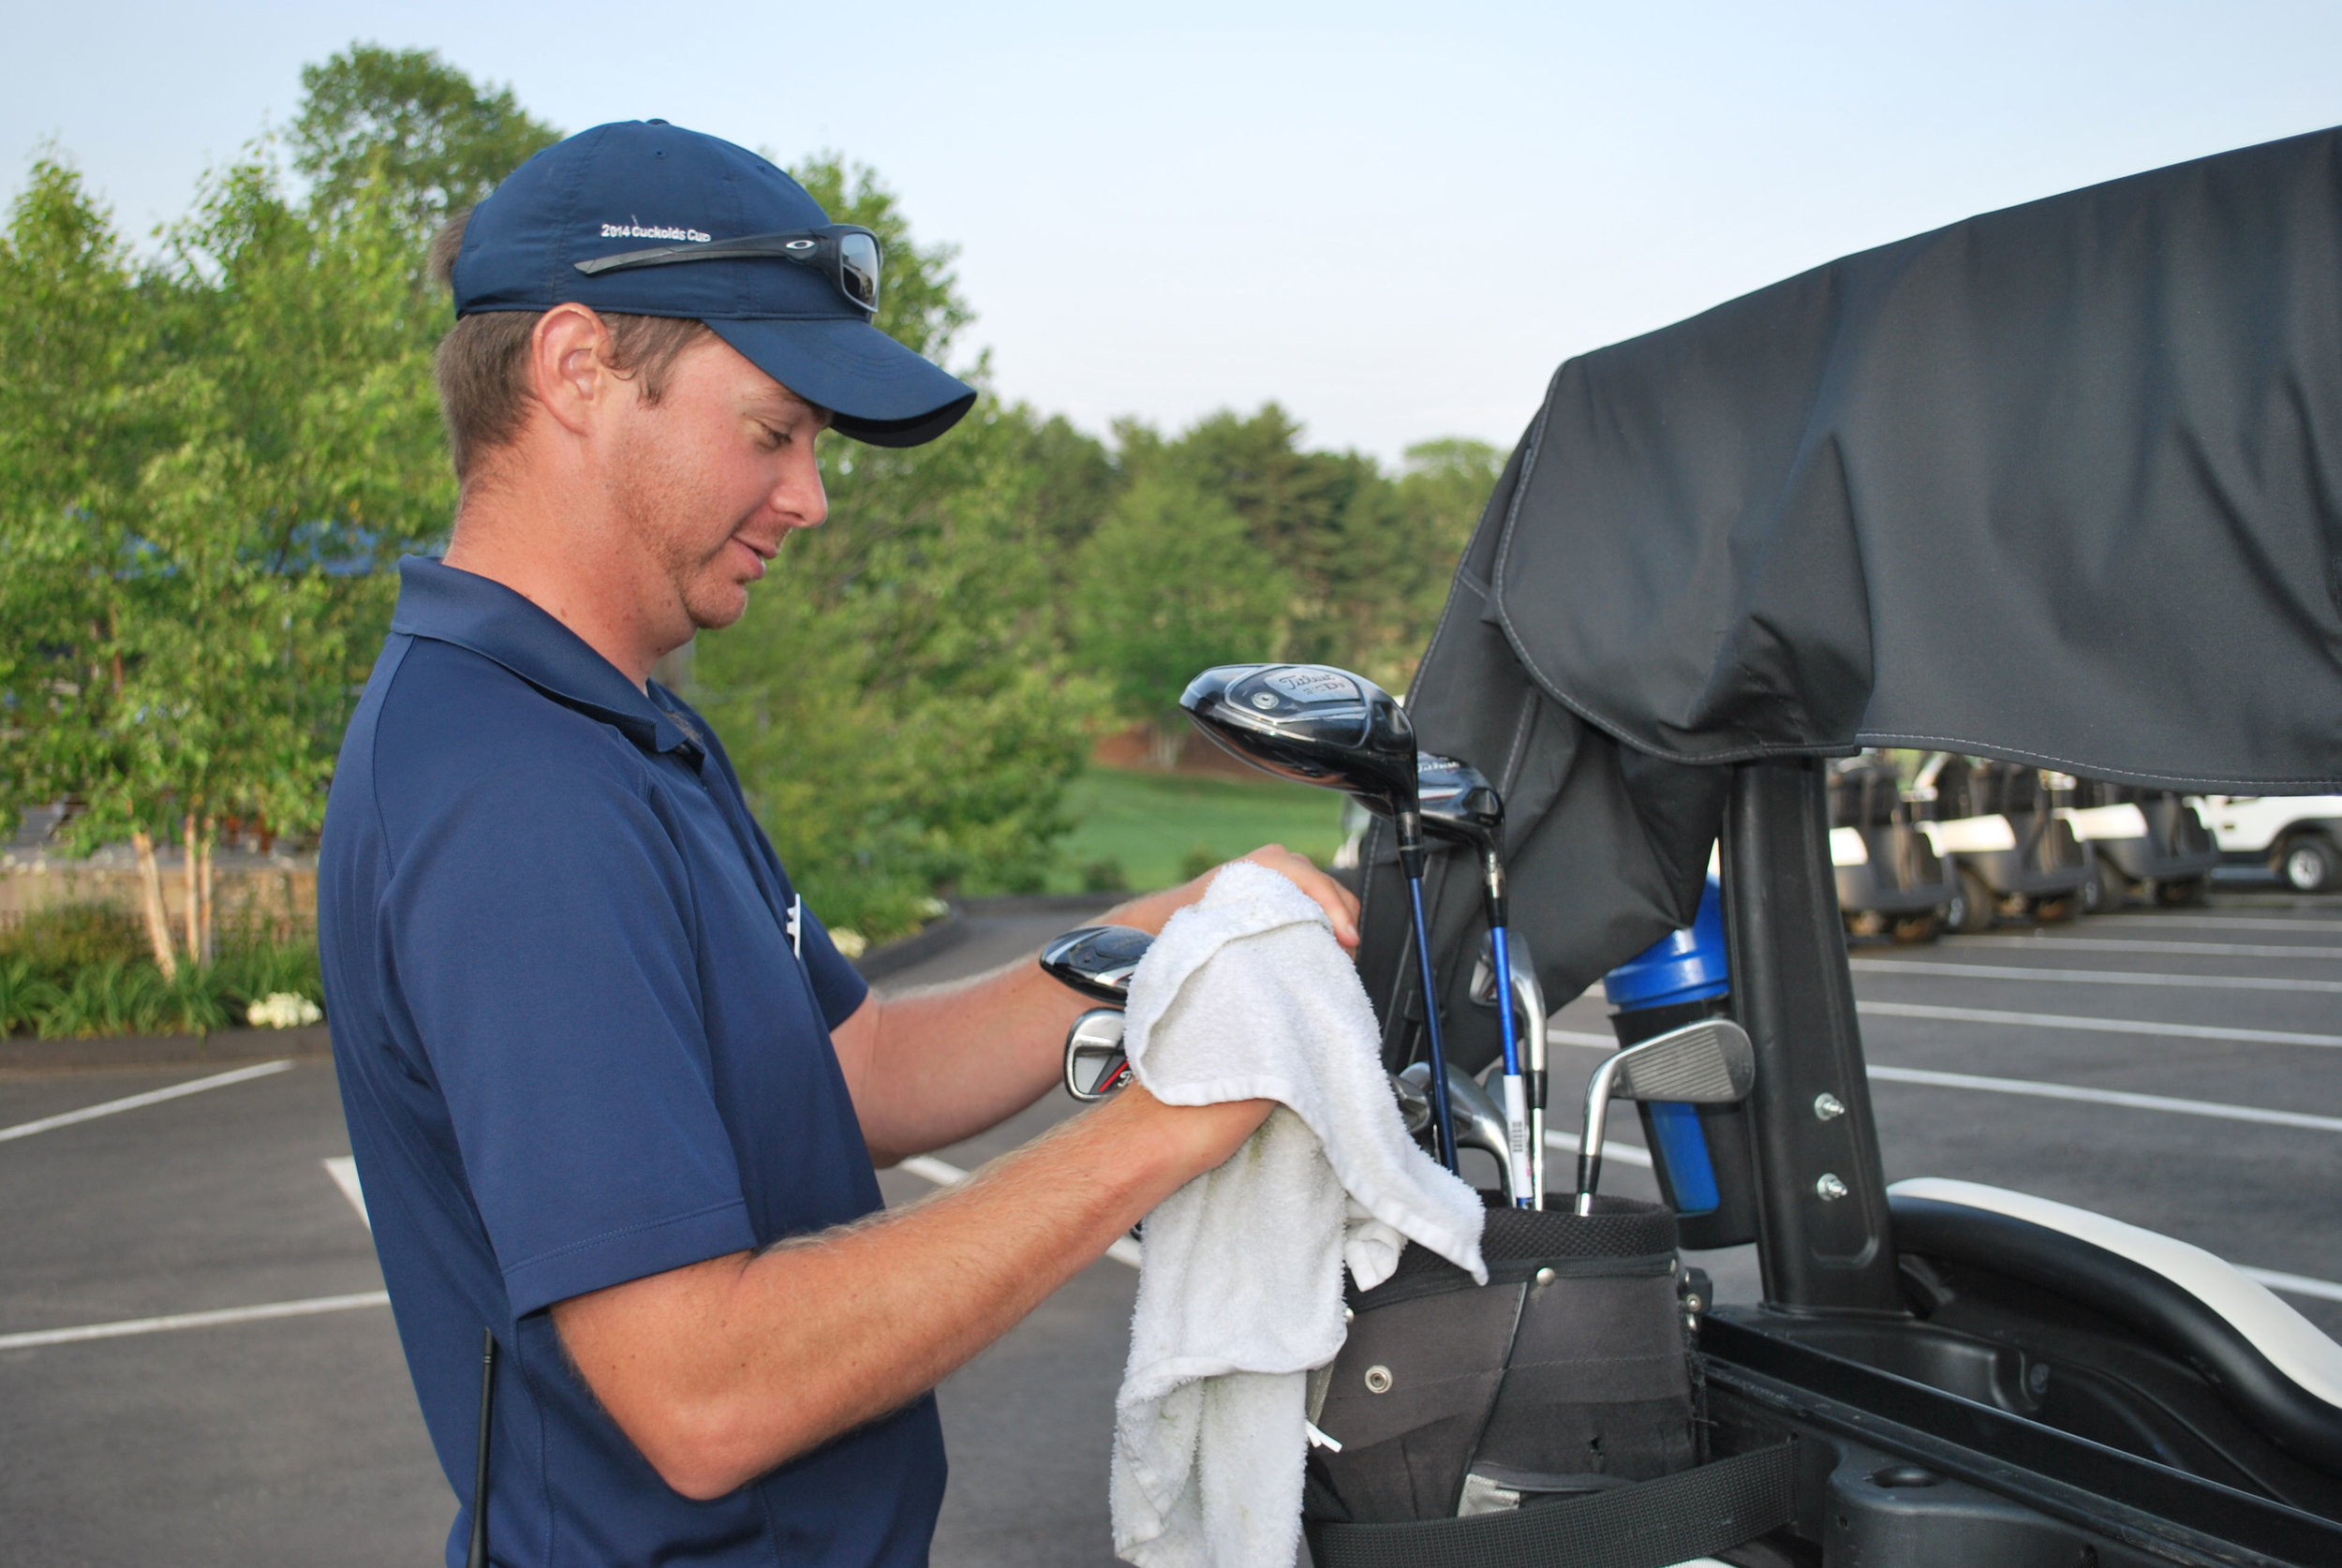 Bag Drop & Club Cleaning Service